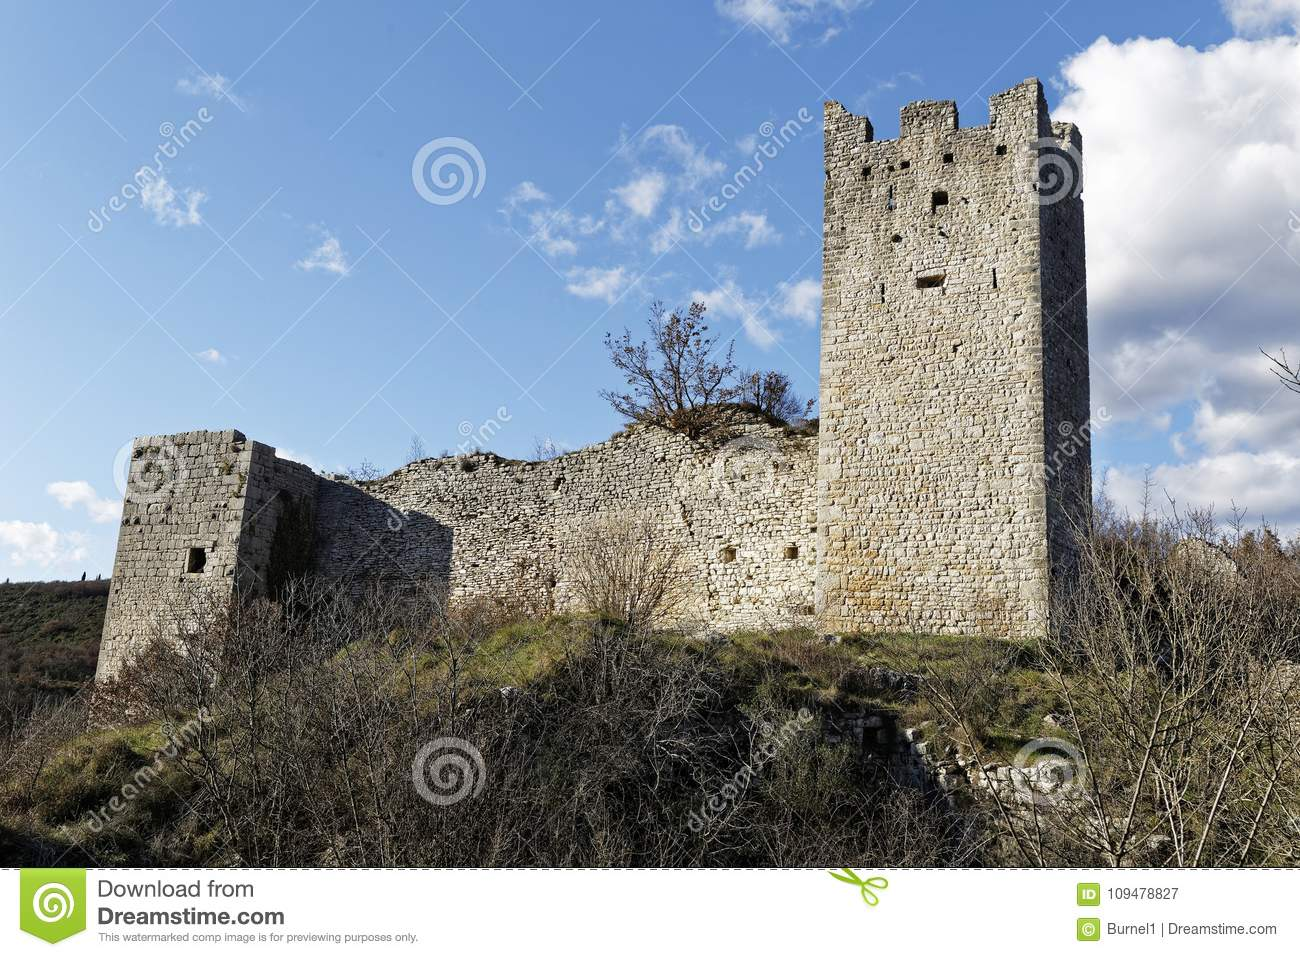 Ruins of old castle